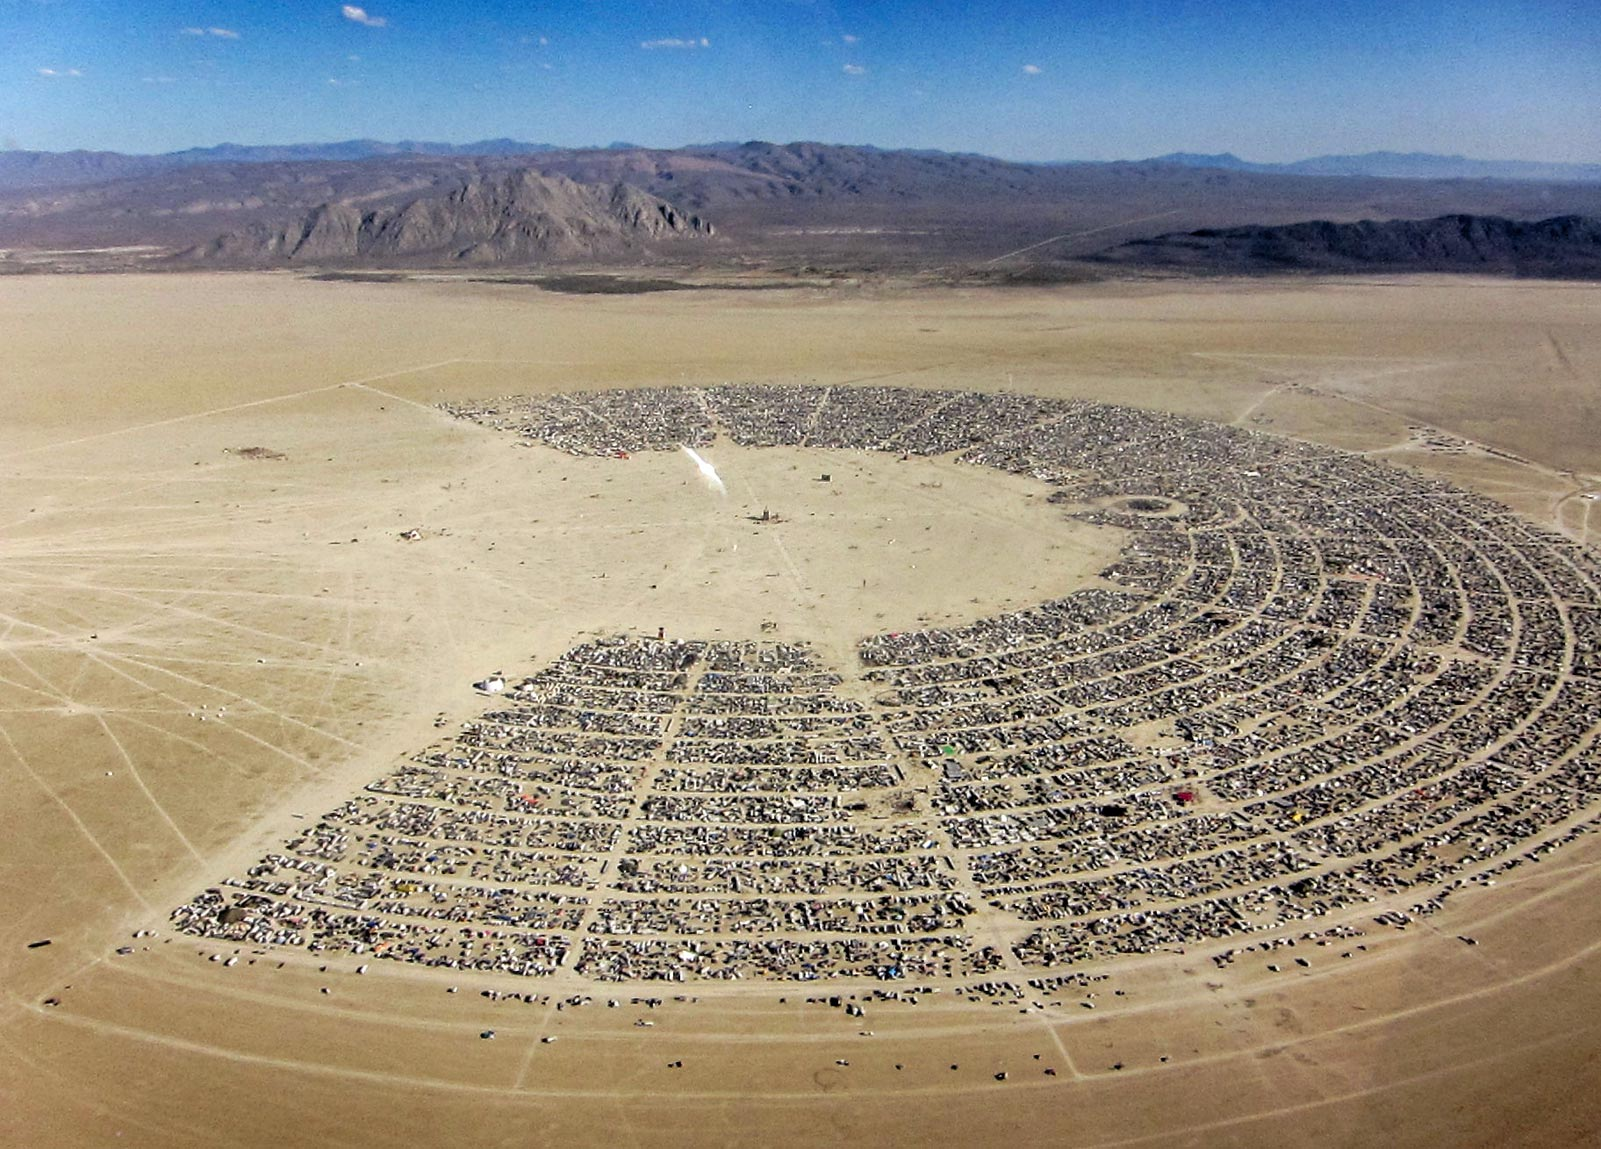 Arial view of Burning Man | Image Credits: Burning Man